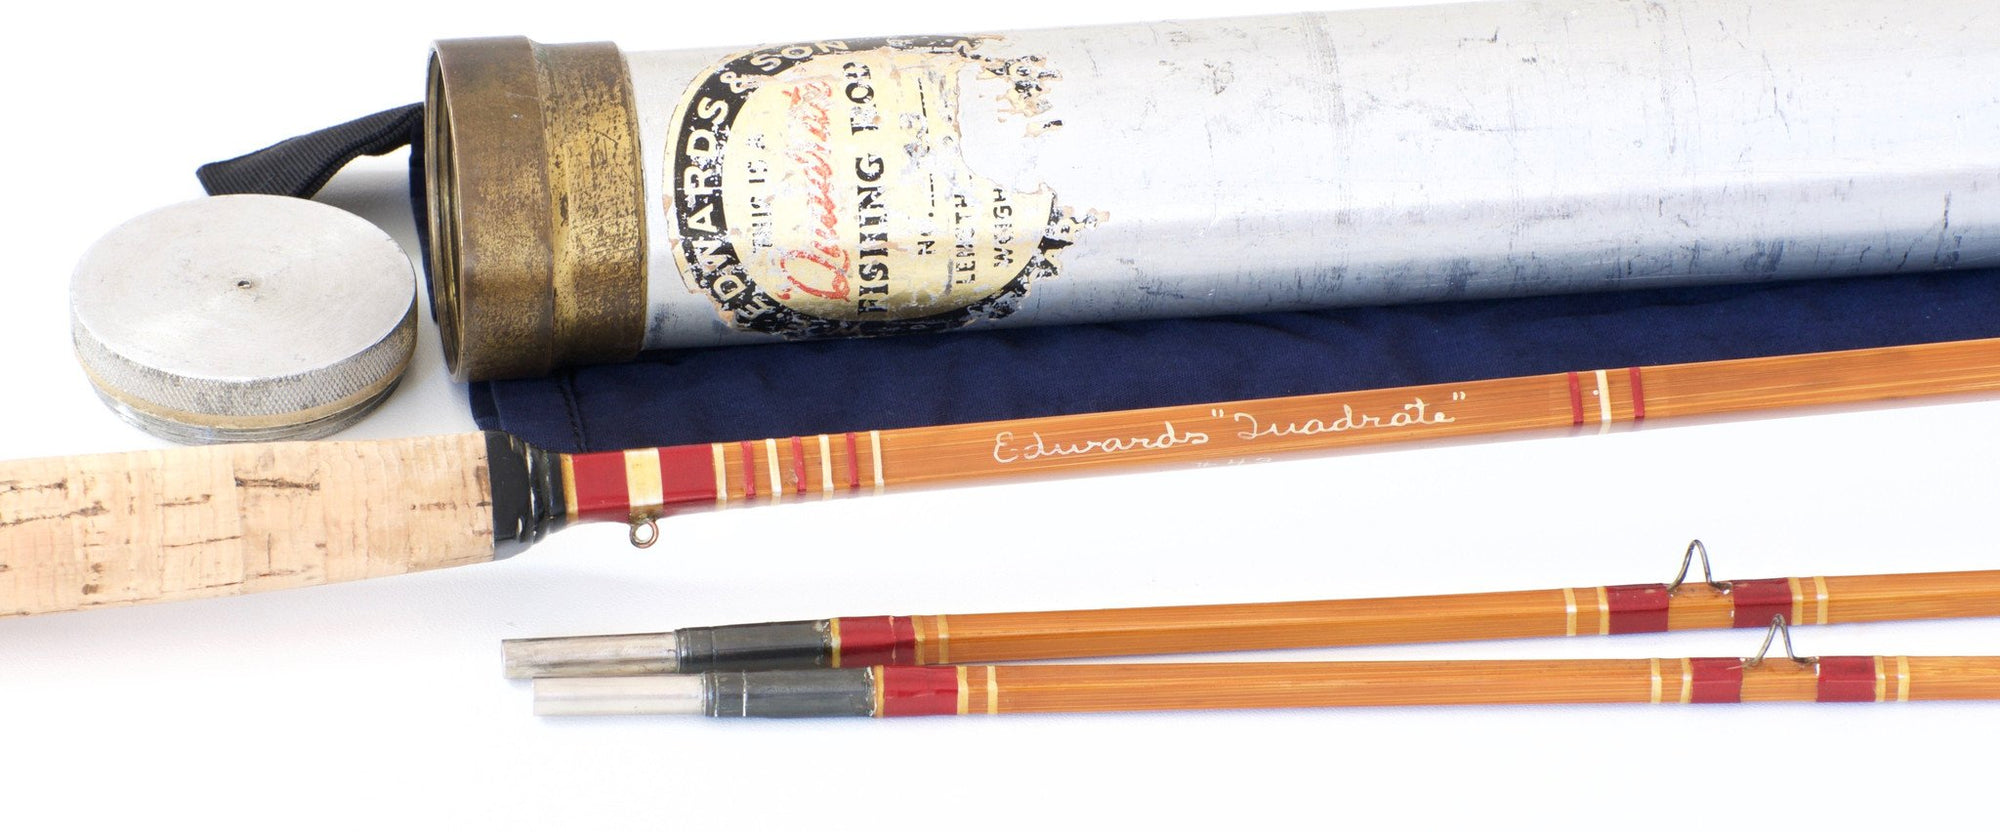 Edwards Quadrate - Model #43 8' Bamboo Rod